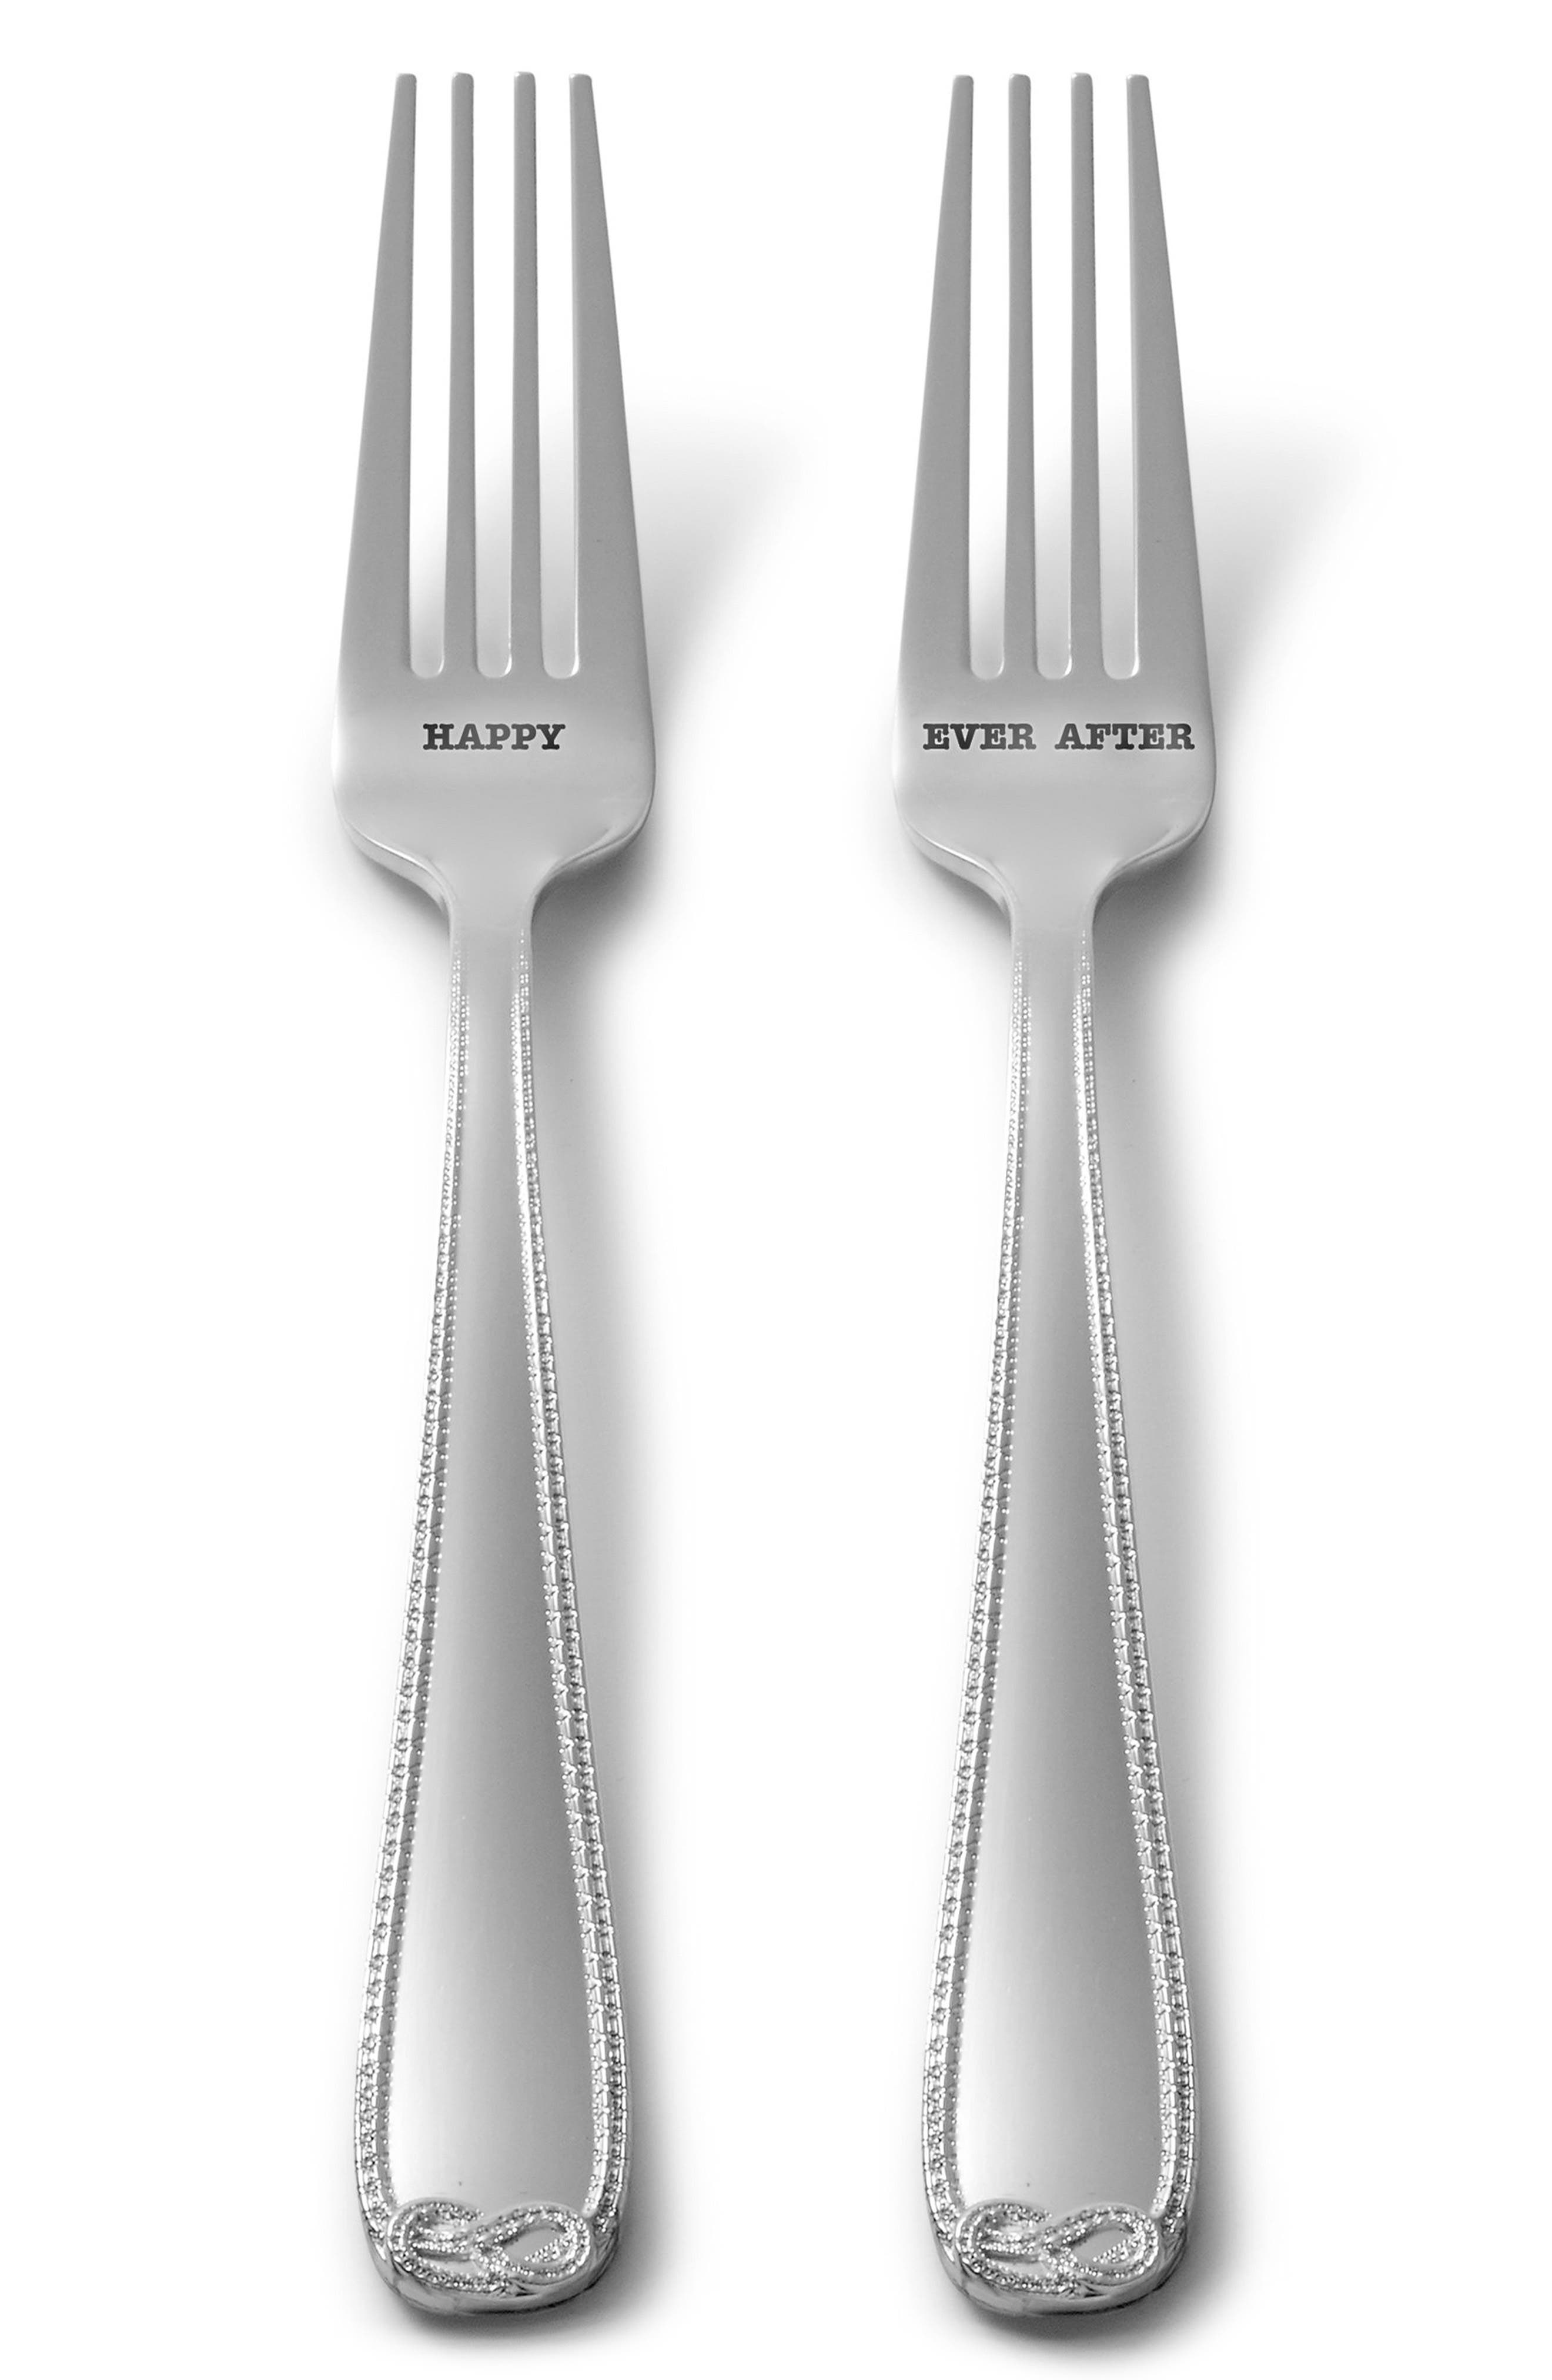 x Wedgwood Infinity Happy Ever After Set of 2 Silver Plated Forks,                             Main thumbnail 1, color,                             040